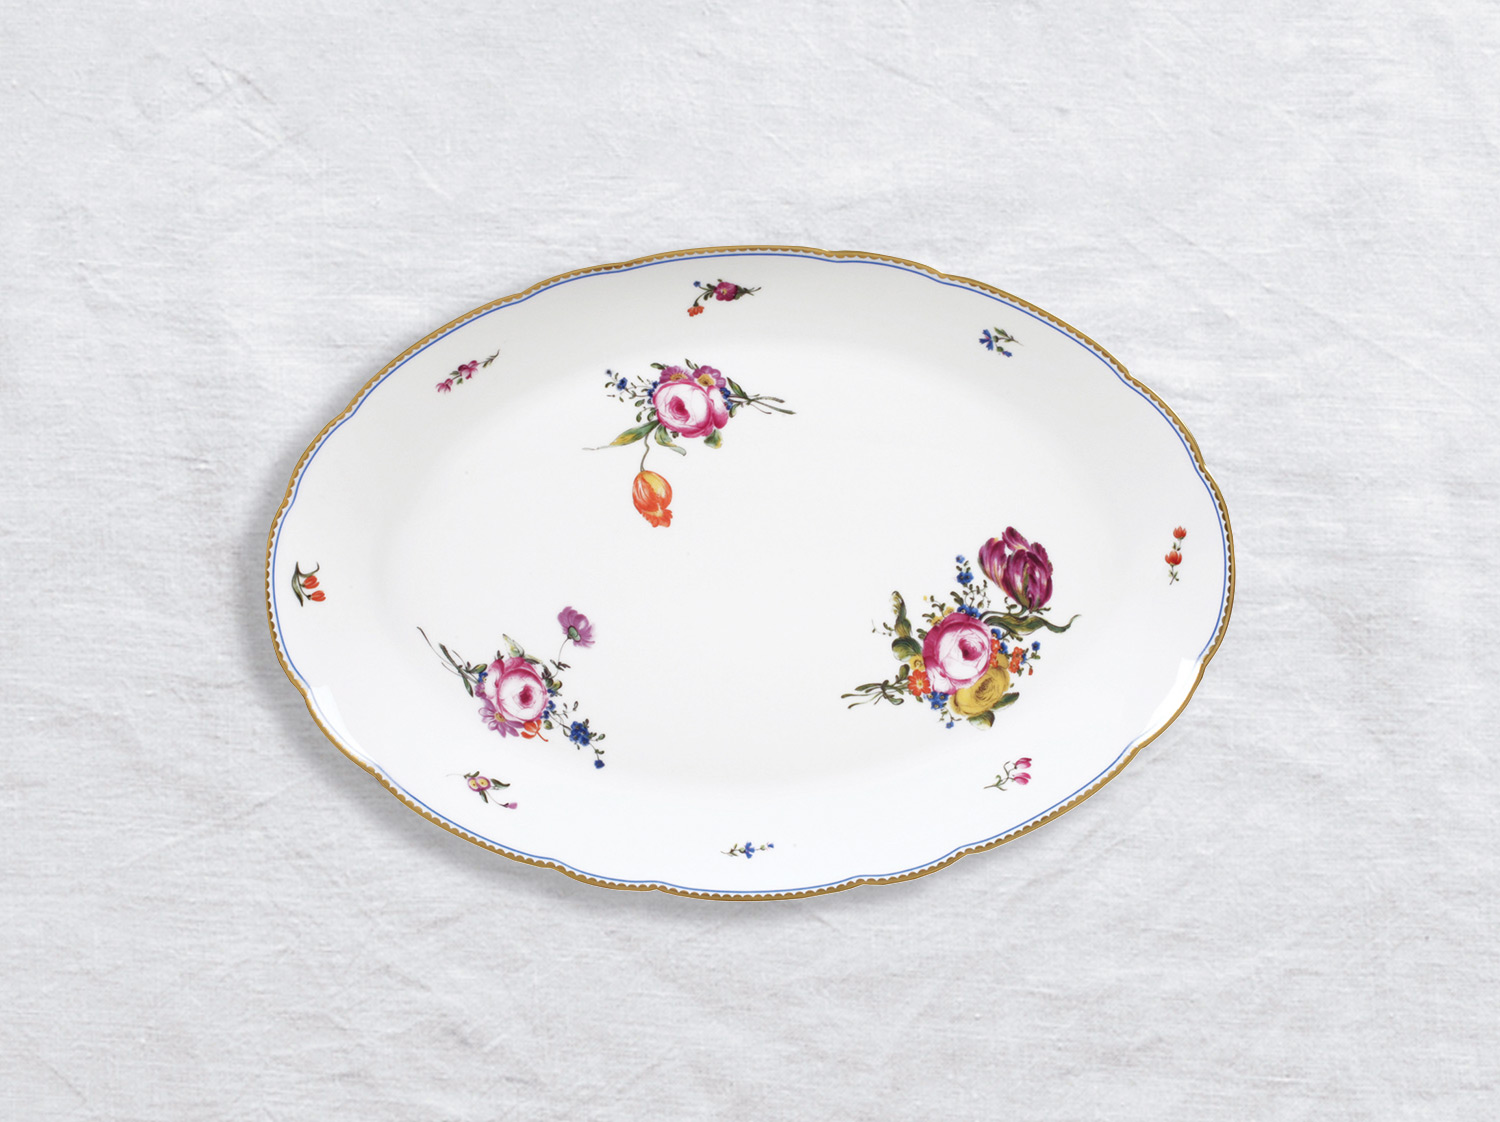 Plat ovale 38 cm en porcelaine de la collection A la reine Bernardaud